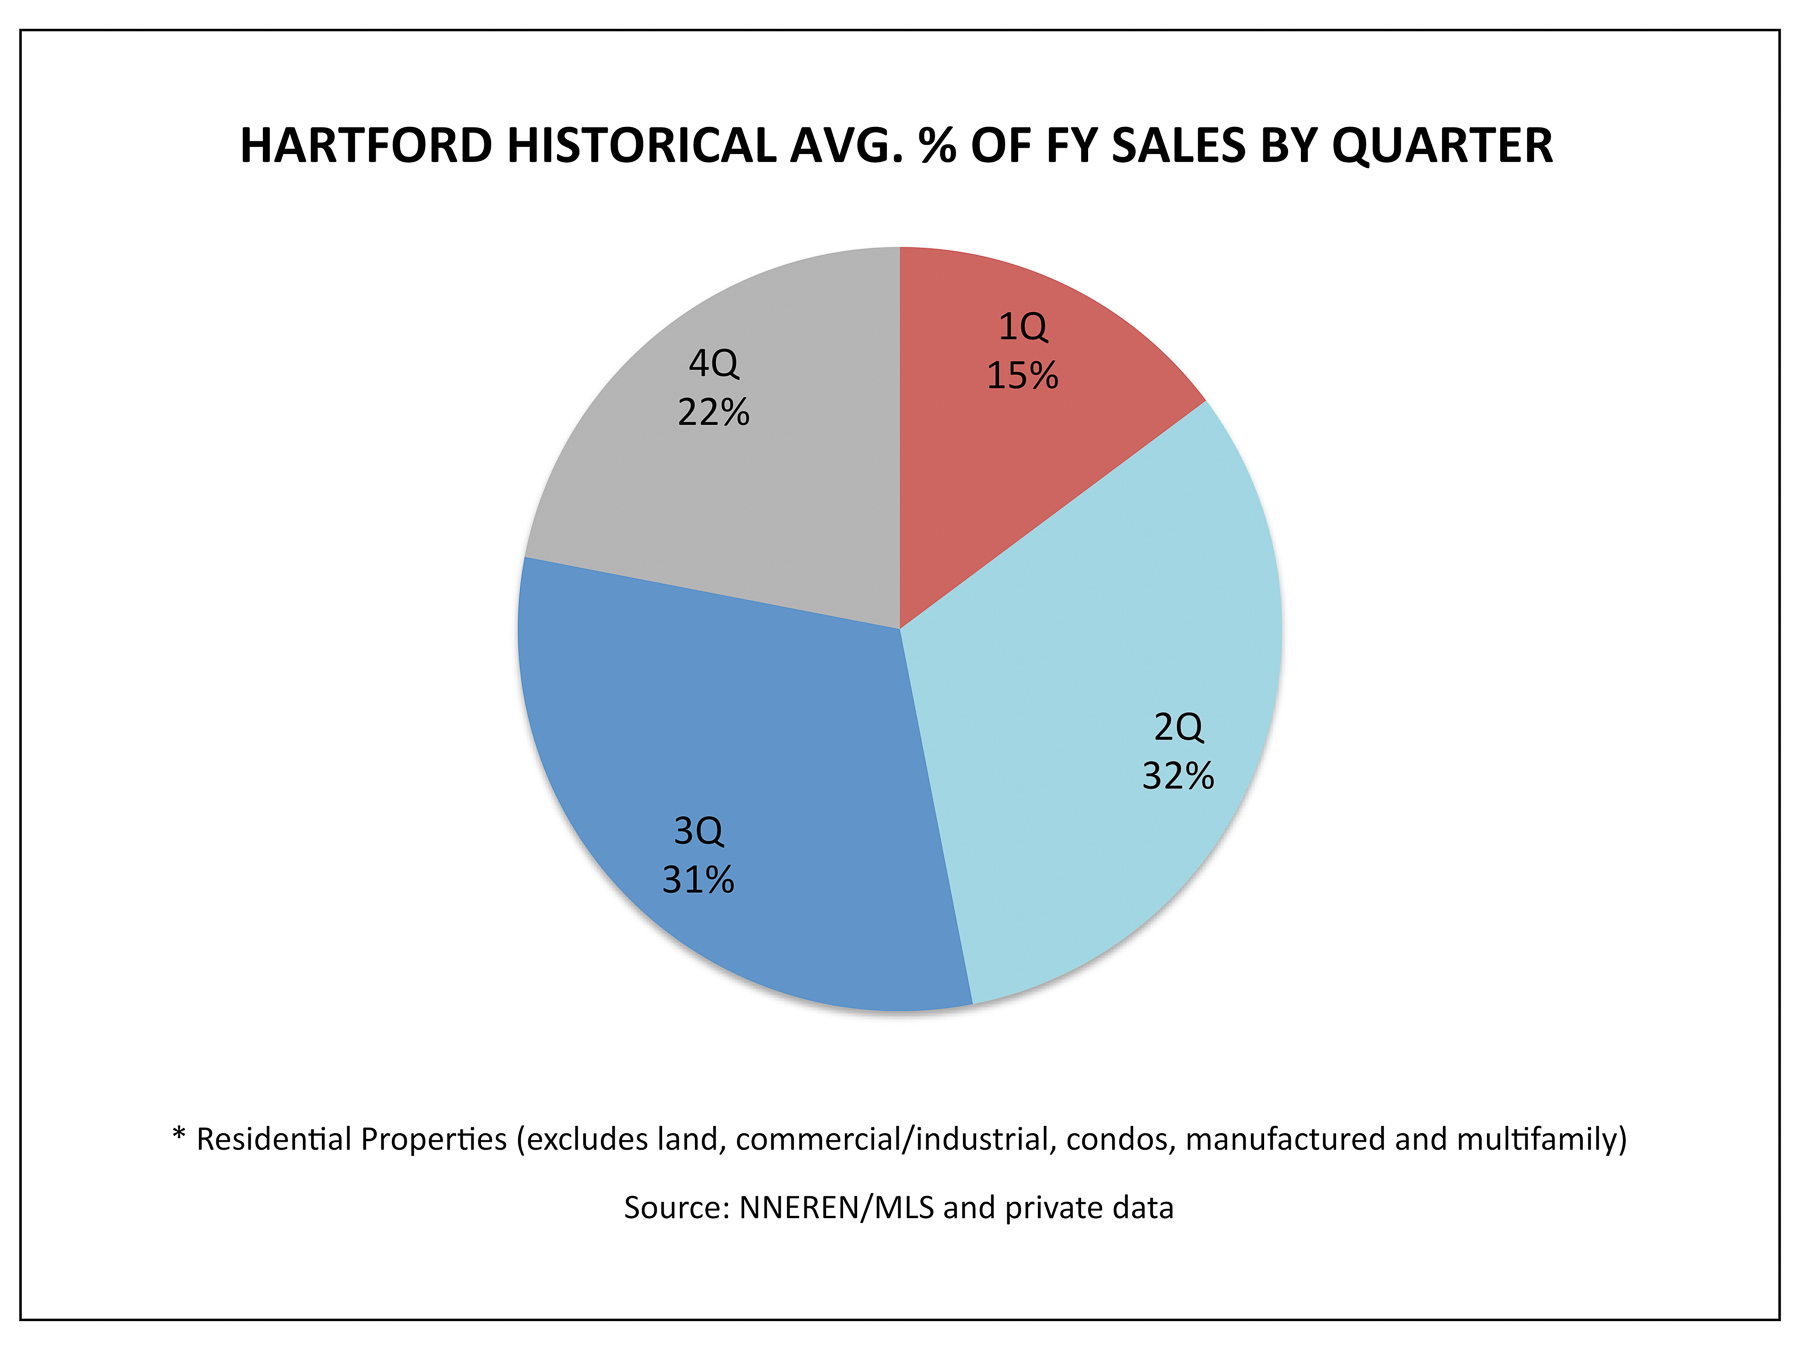 Hartford VT Real Estate - 1Q Historical Avg. % Homes Sold Per Quarter